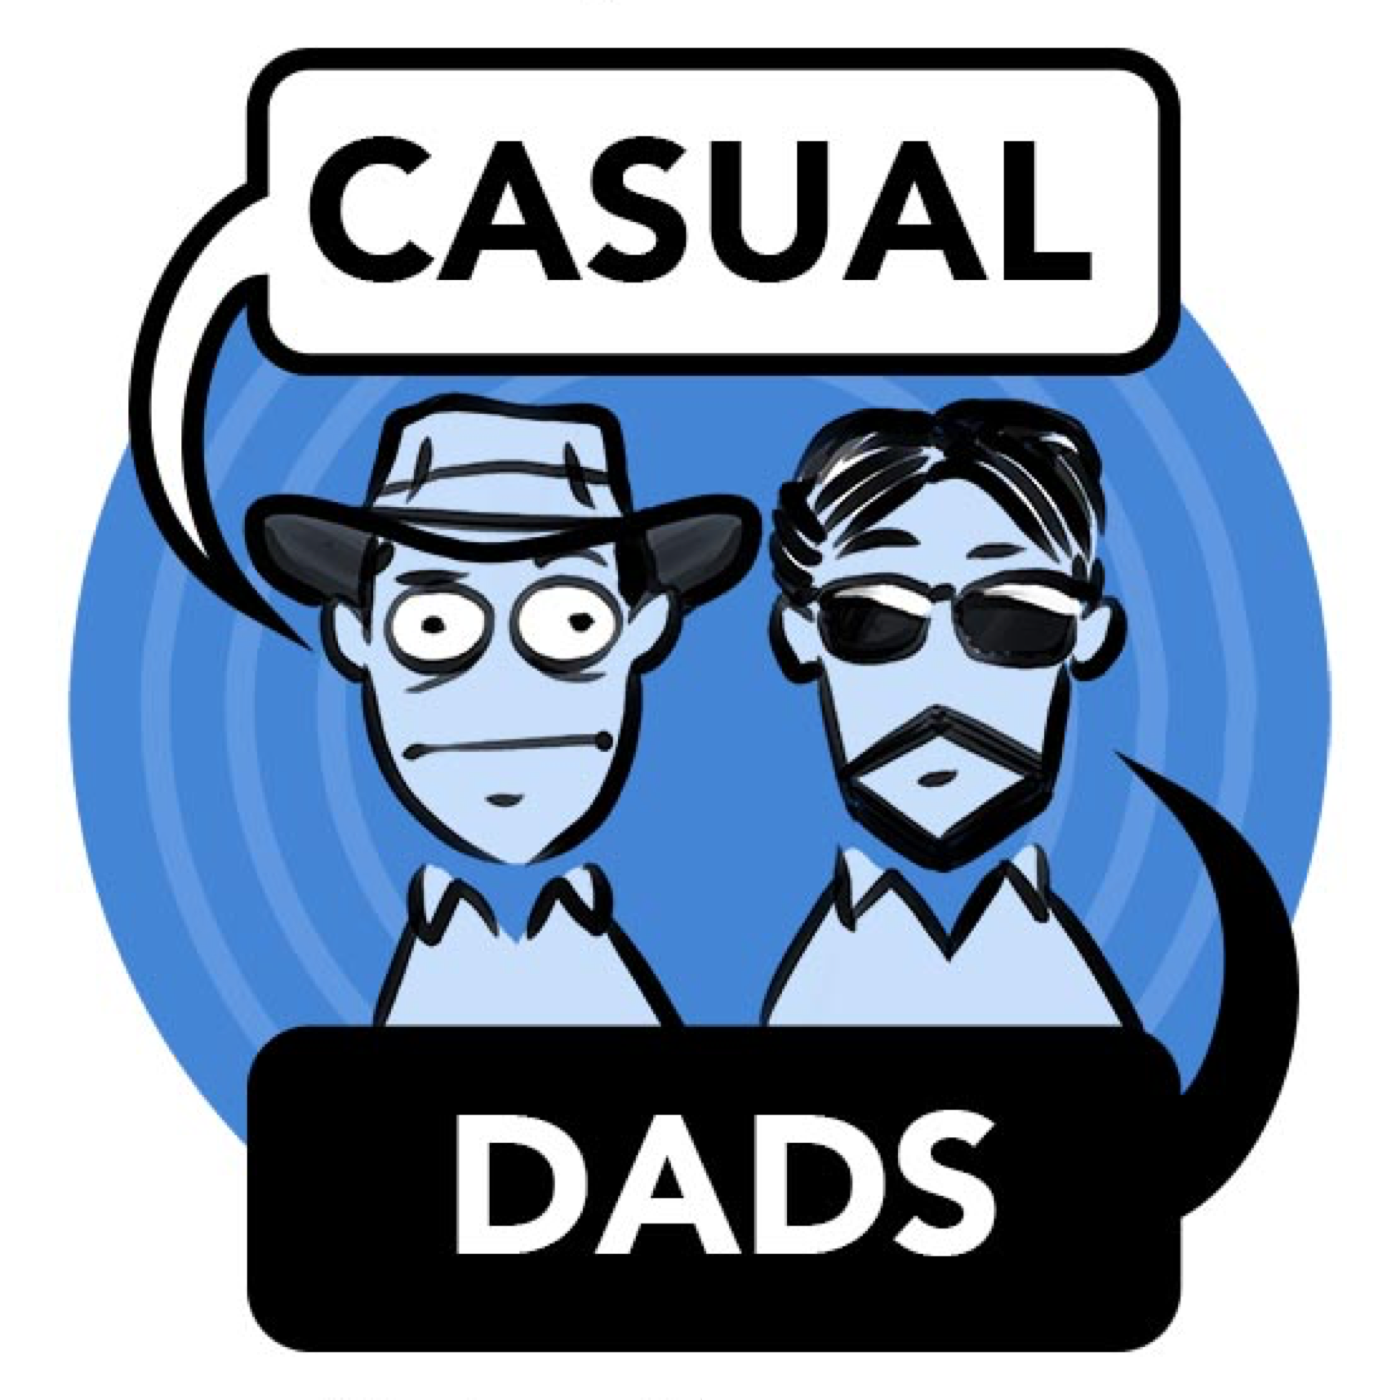 Casual Dads DRAFT.png